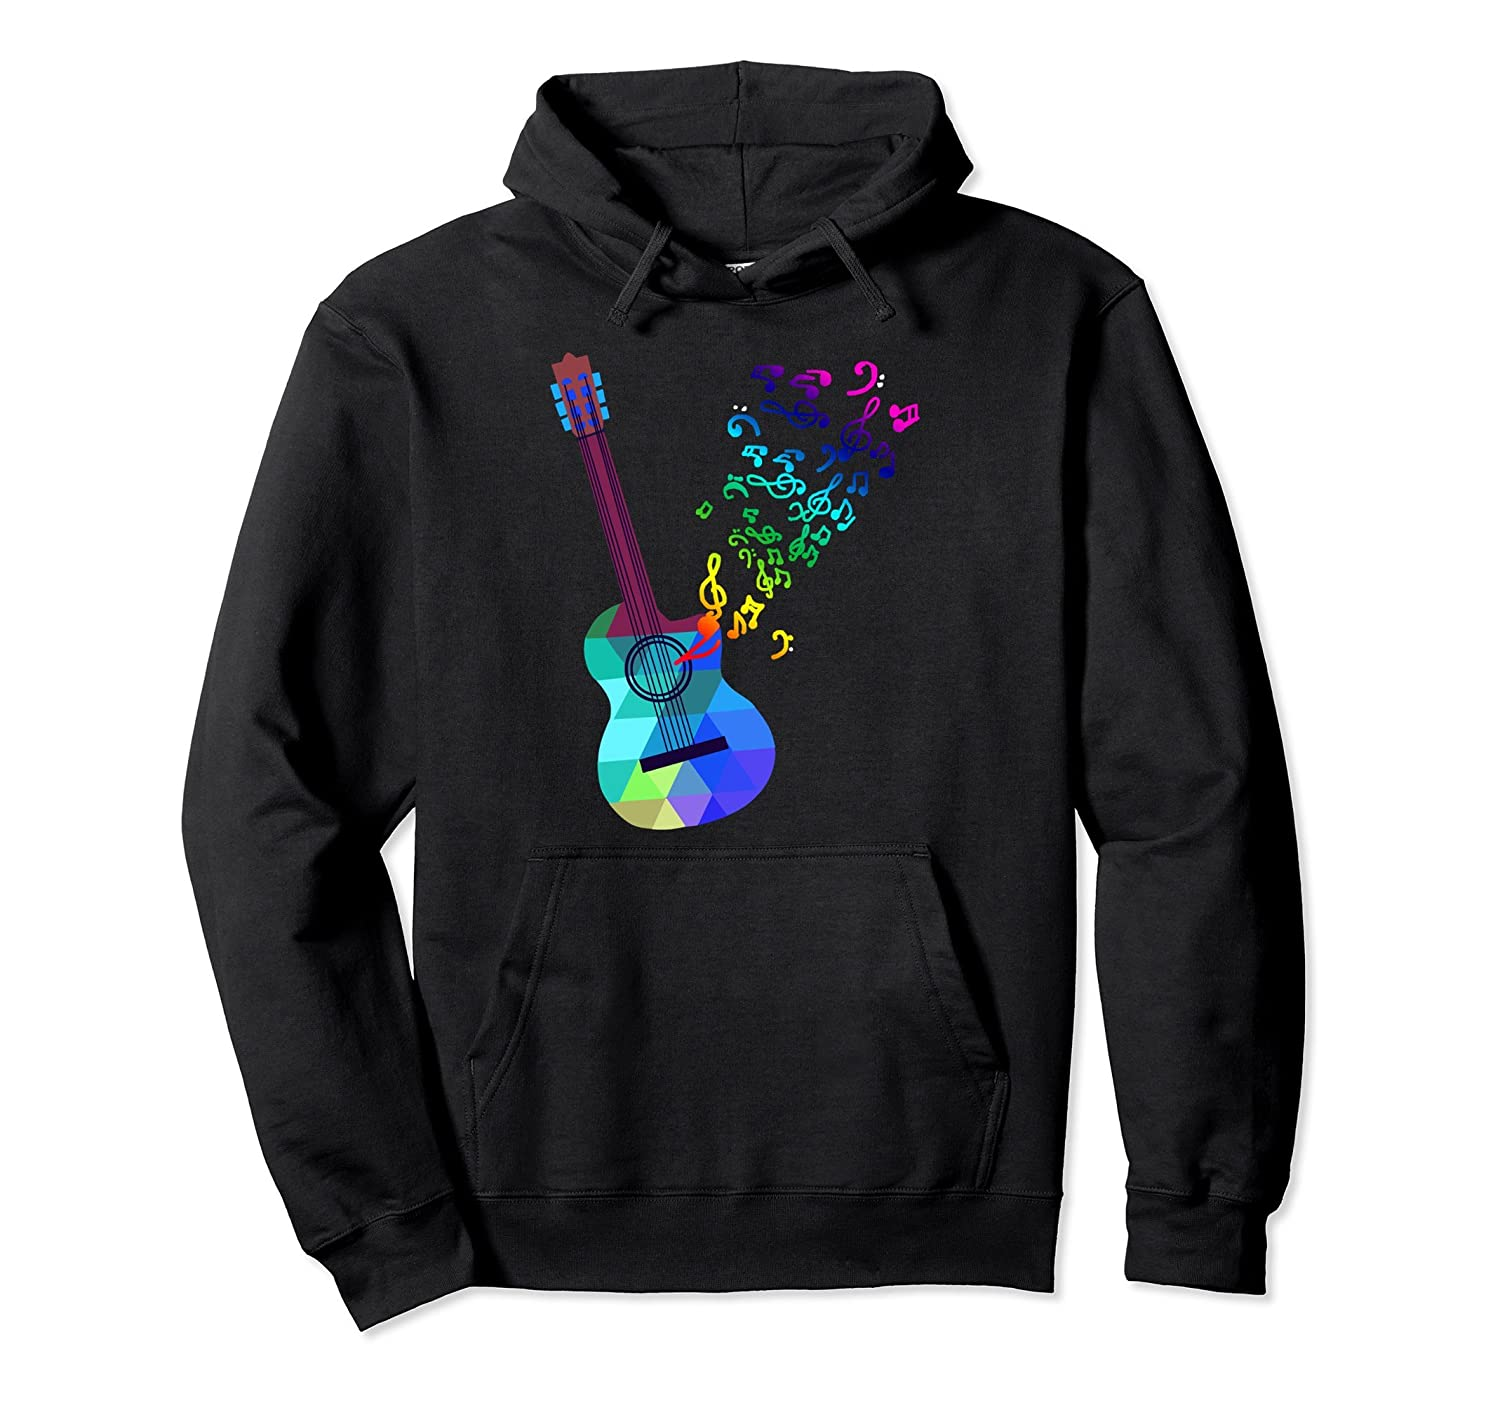 Acoustic Guitar Music Notes Hoodie Guitar Musician Gift Tpt Best